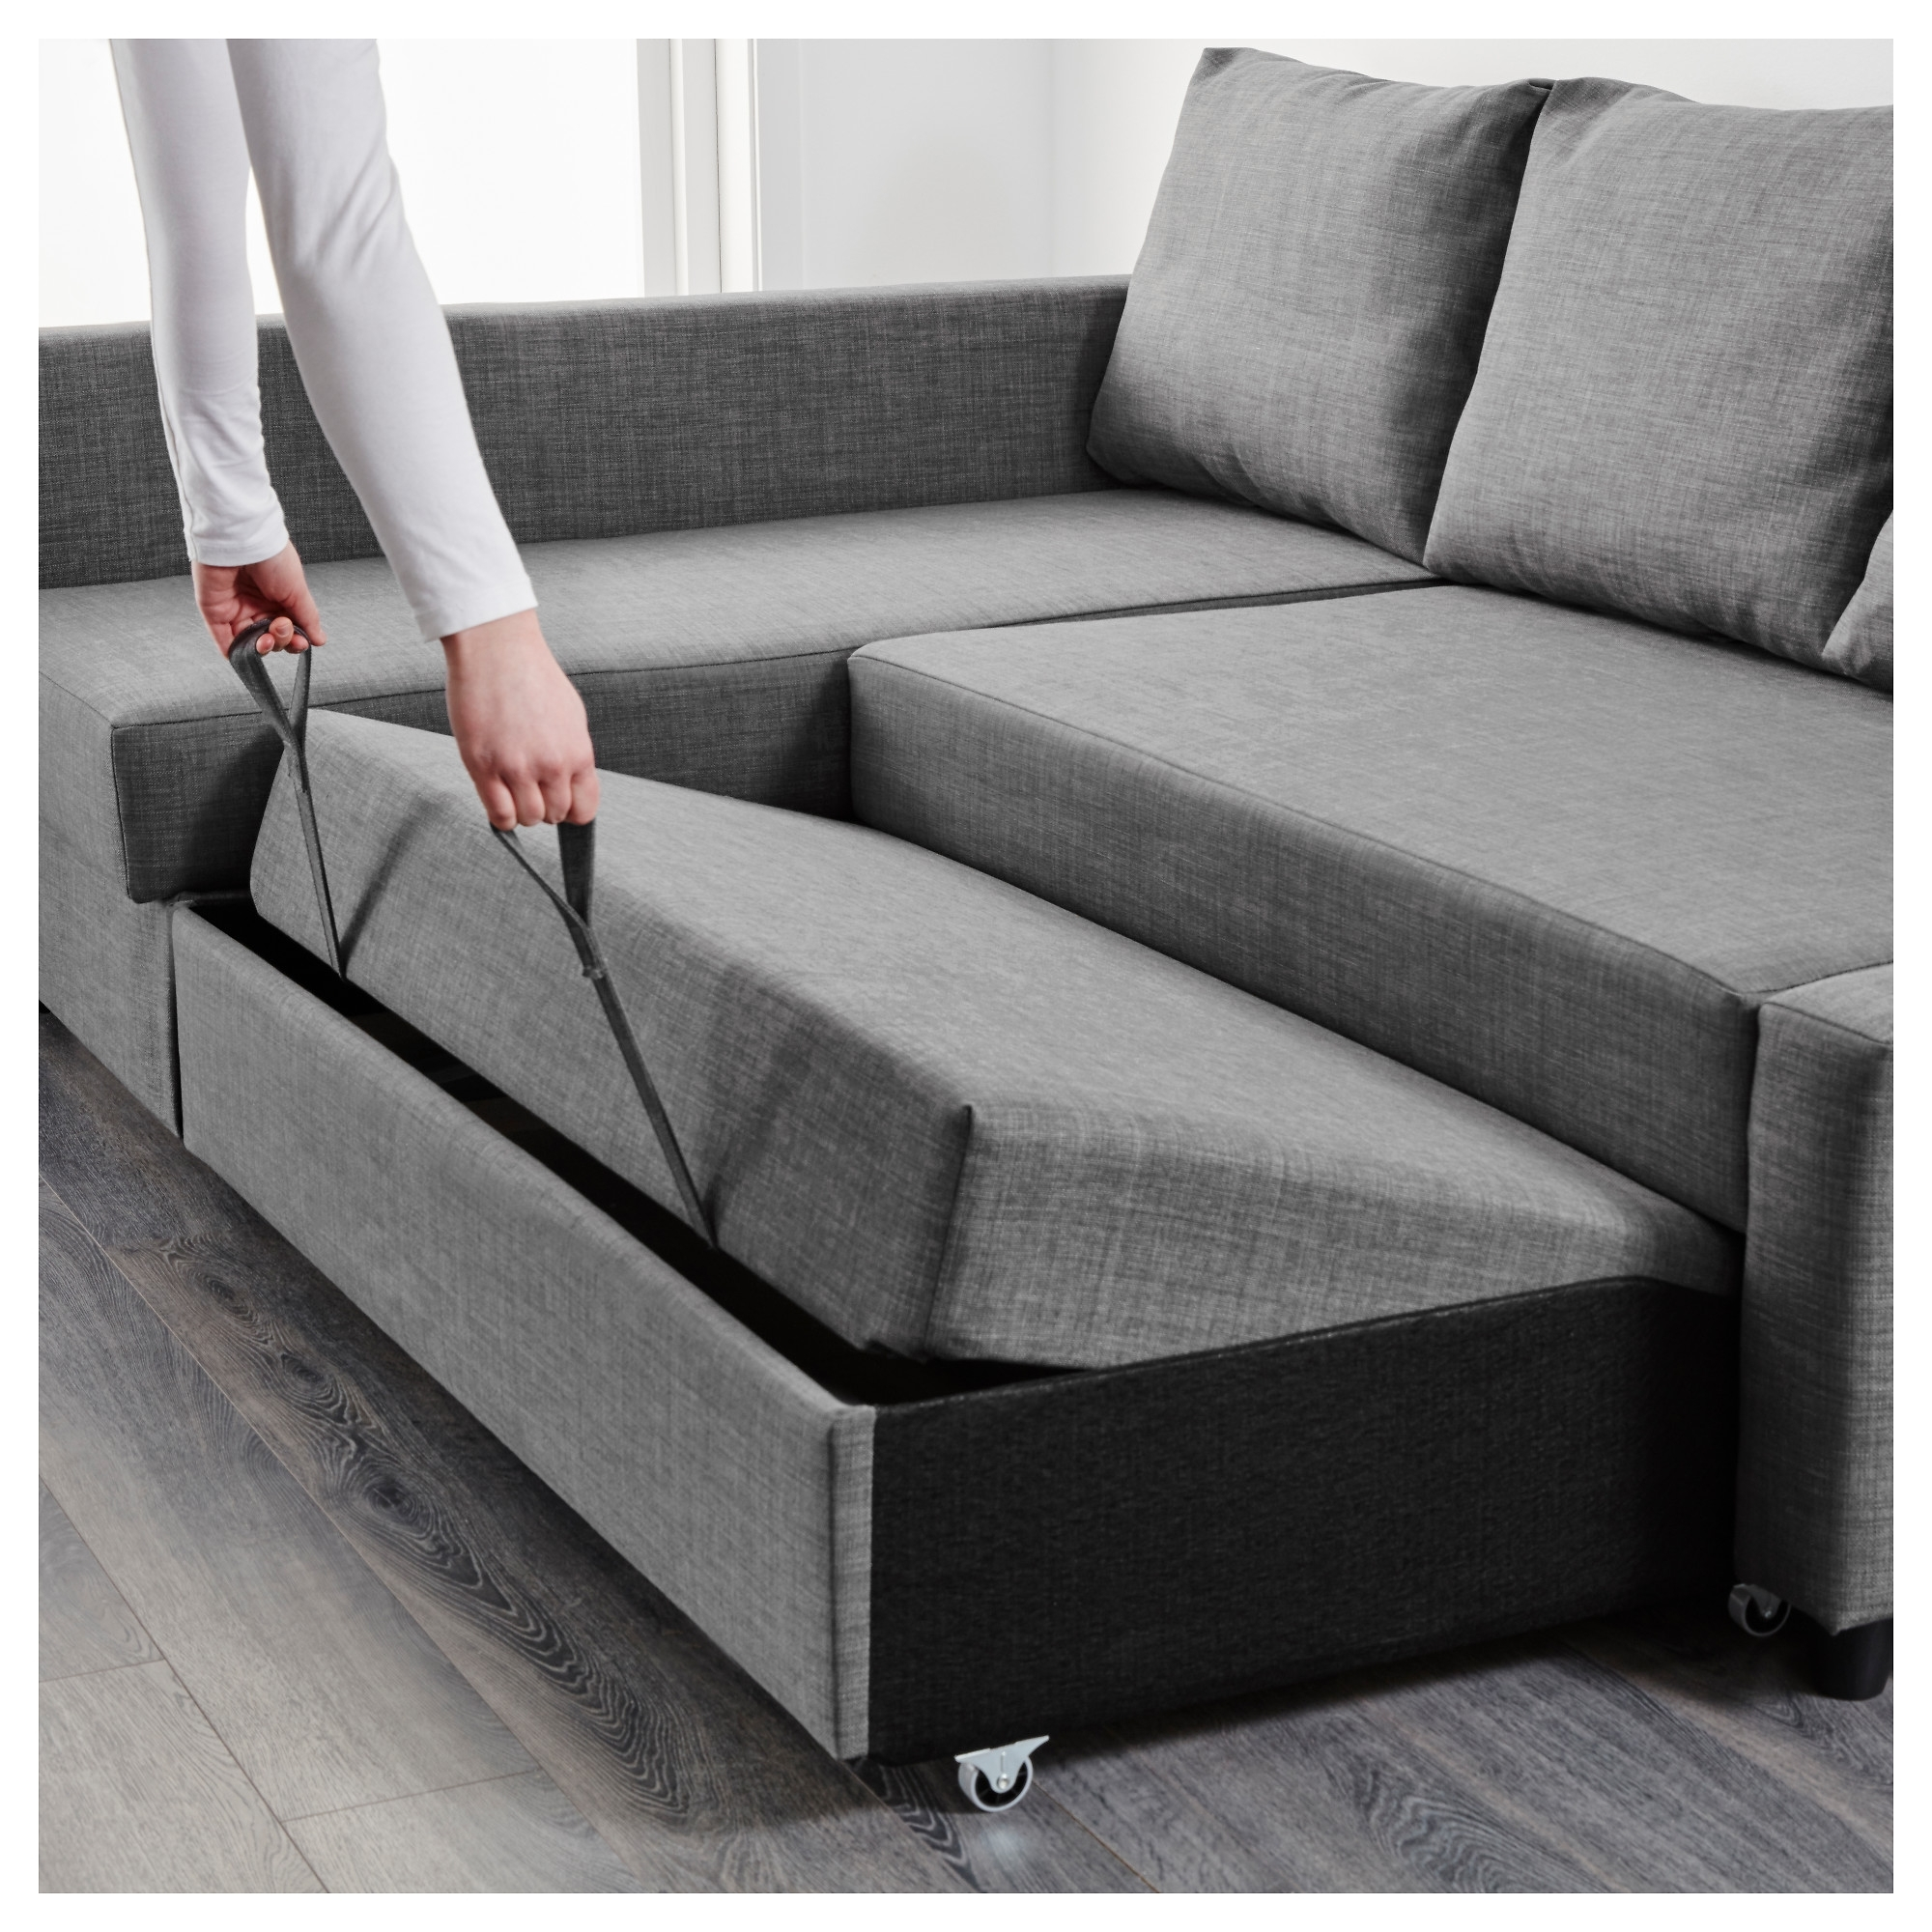 top 10 sleeper sofas kennedy sofa leather best ideas ikea sectional